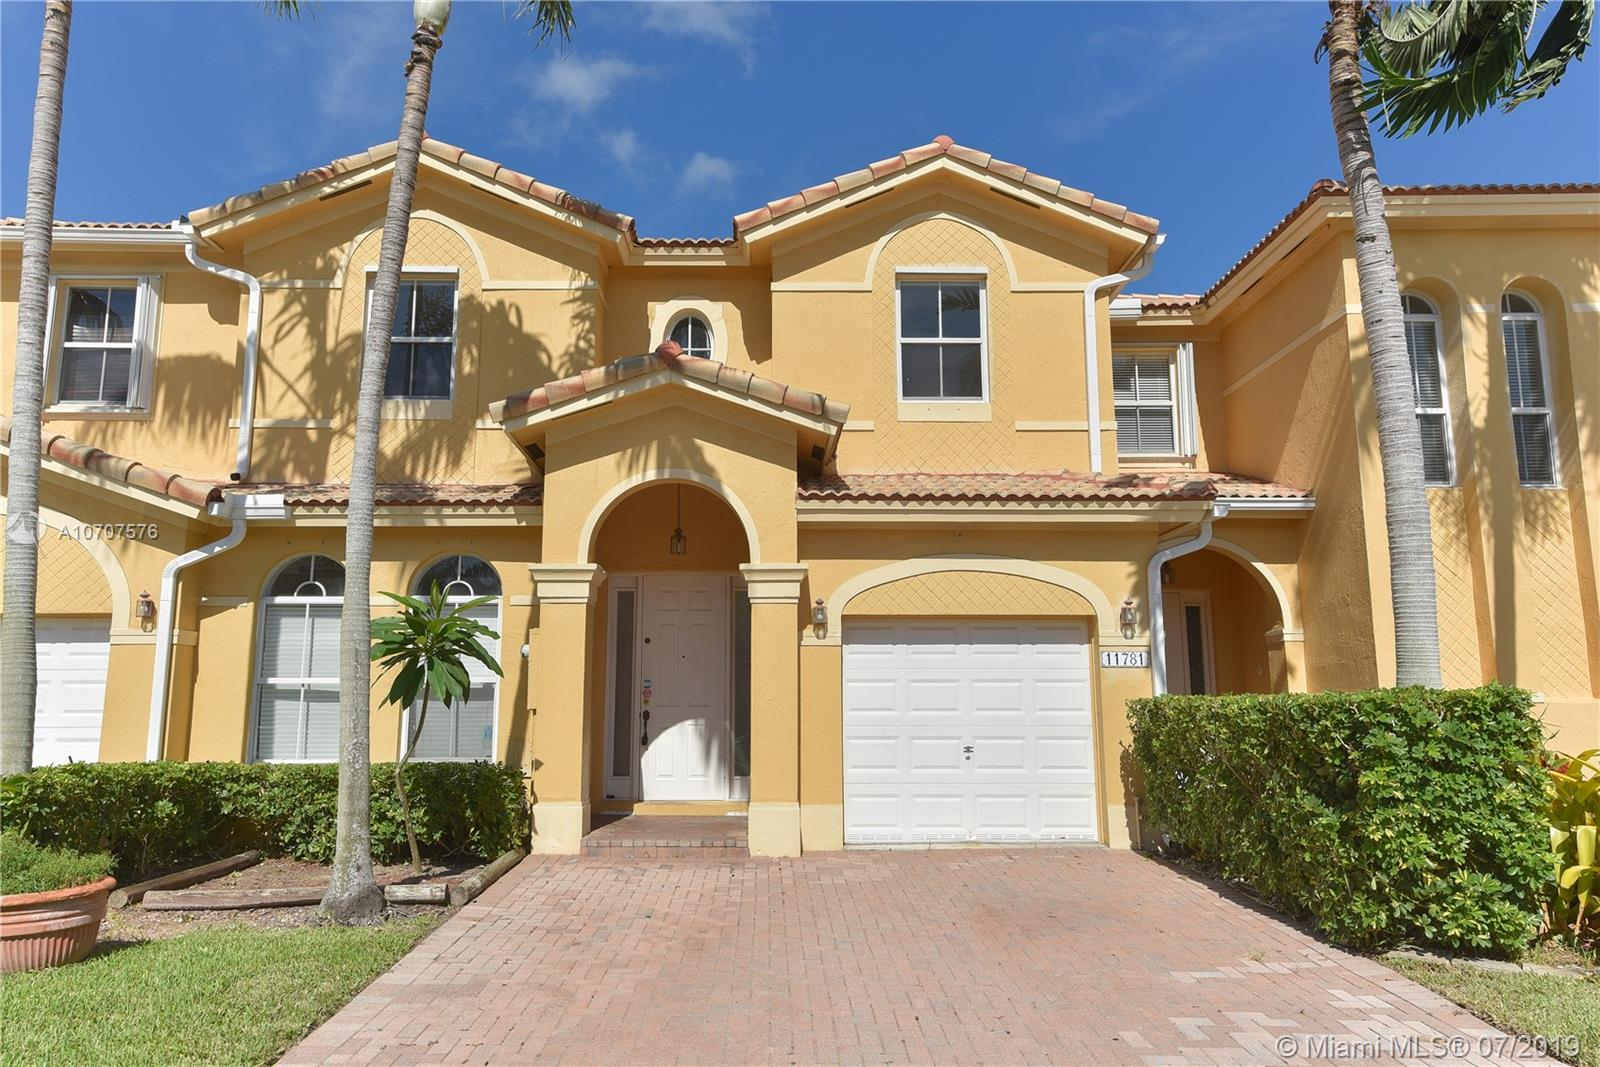 11781 SW 137th Pl, Kendall in Miami-dade County County, FL 33186 Home for Sale